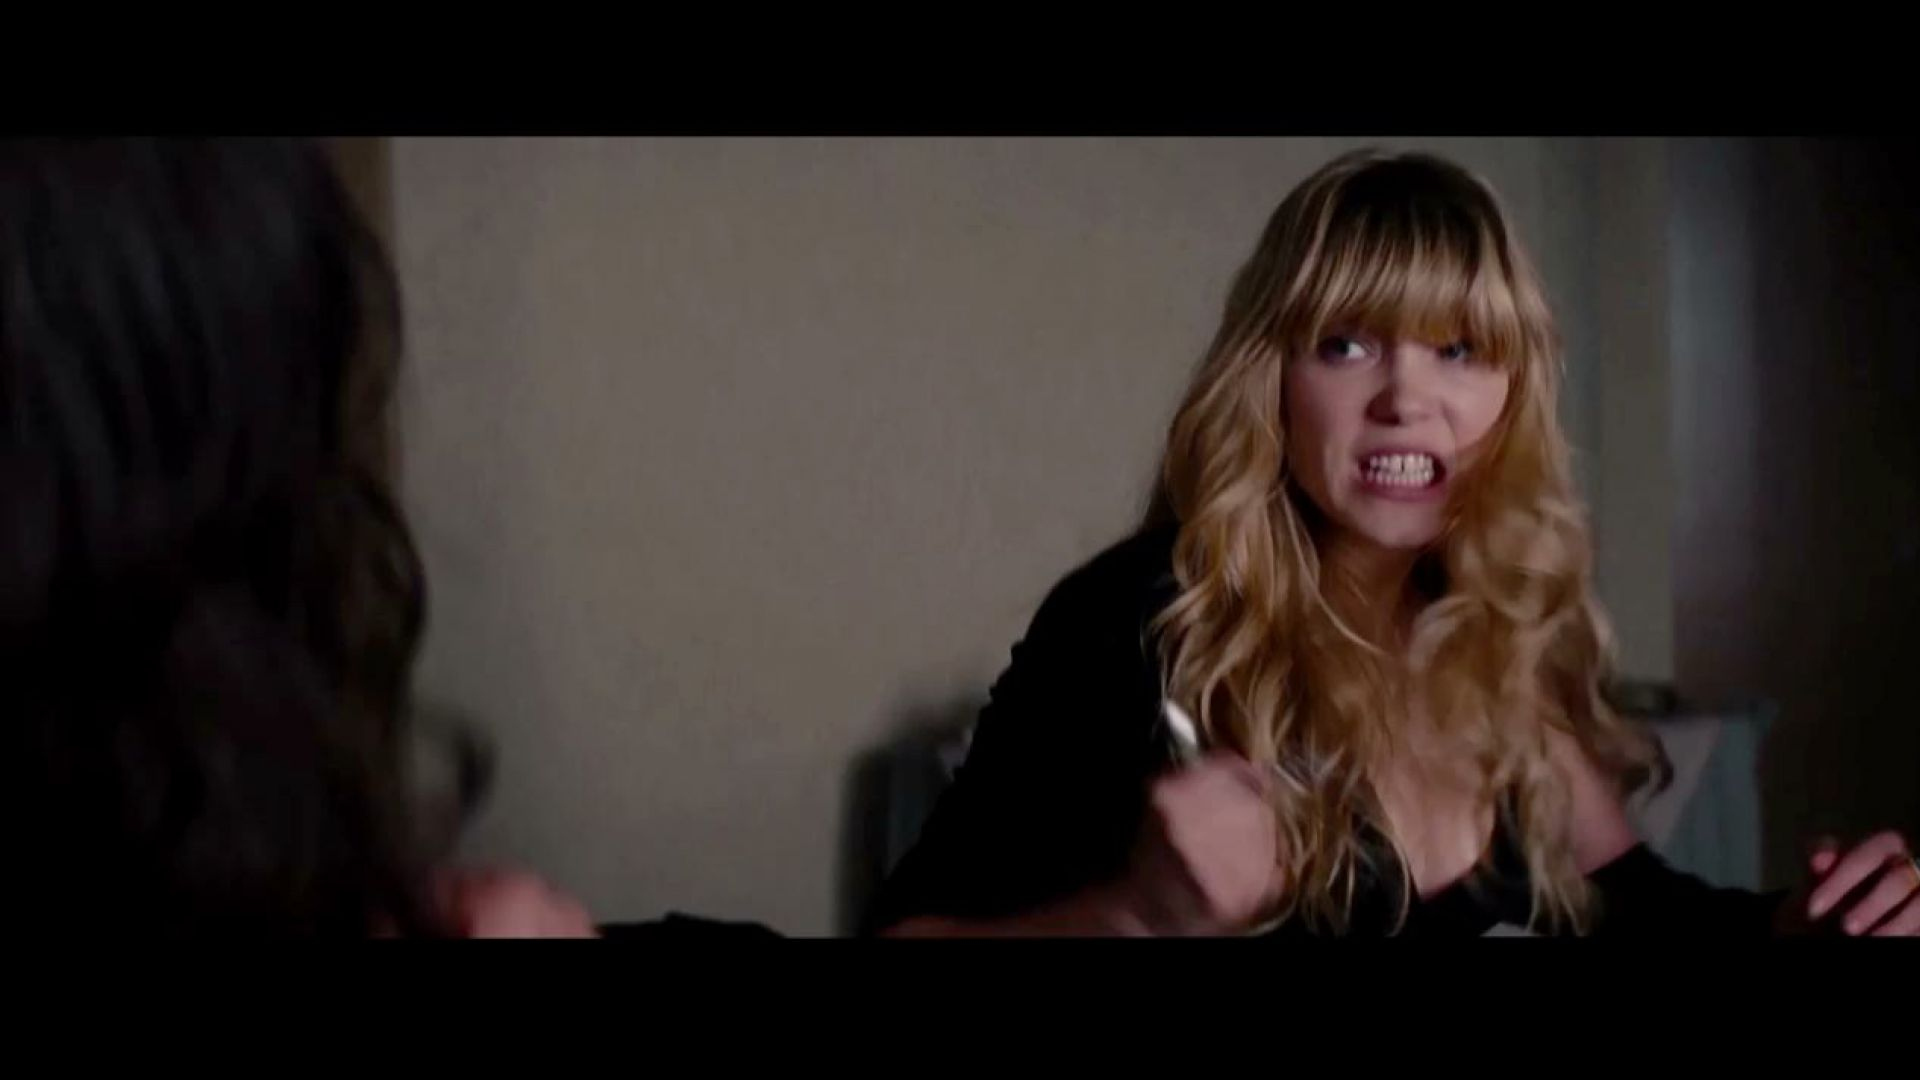 lea seydoux and paula patton fight in mission impossible